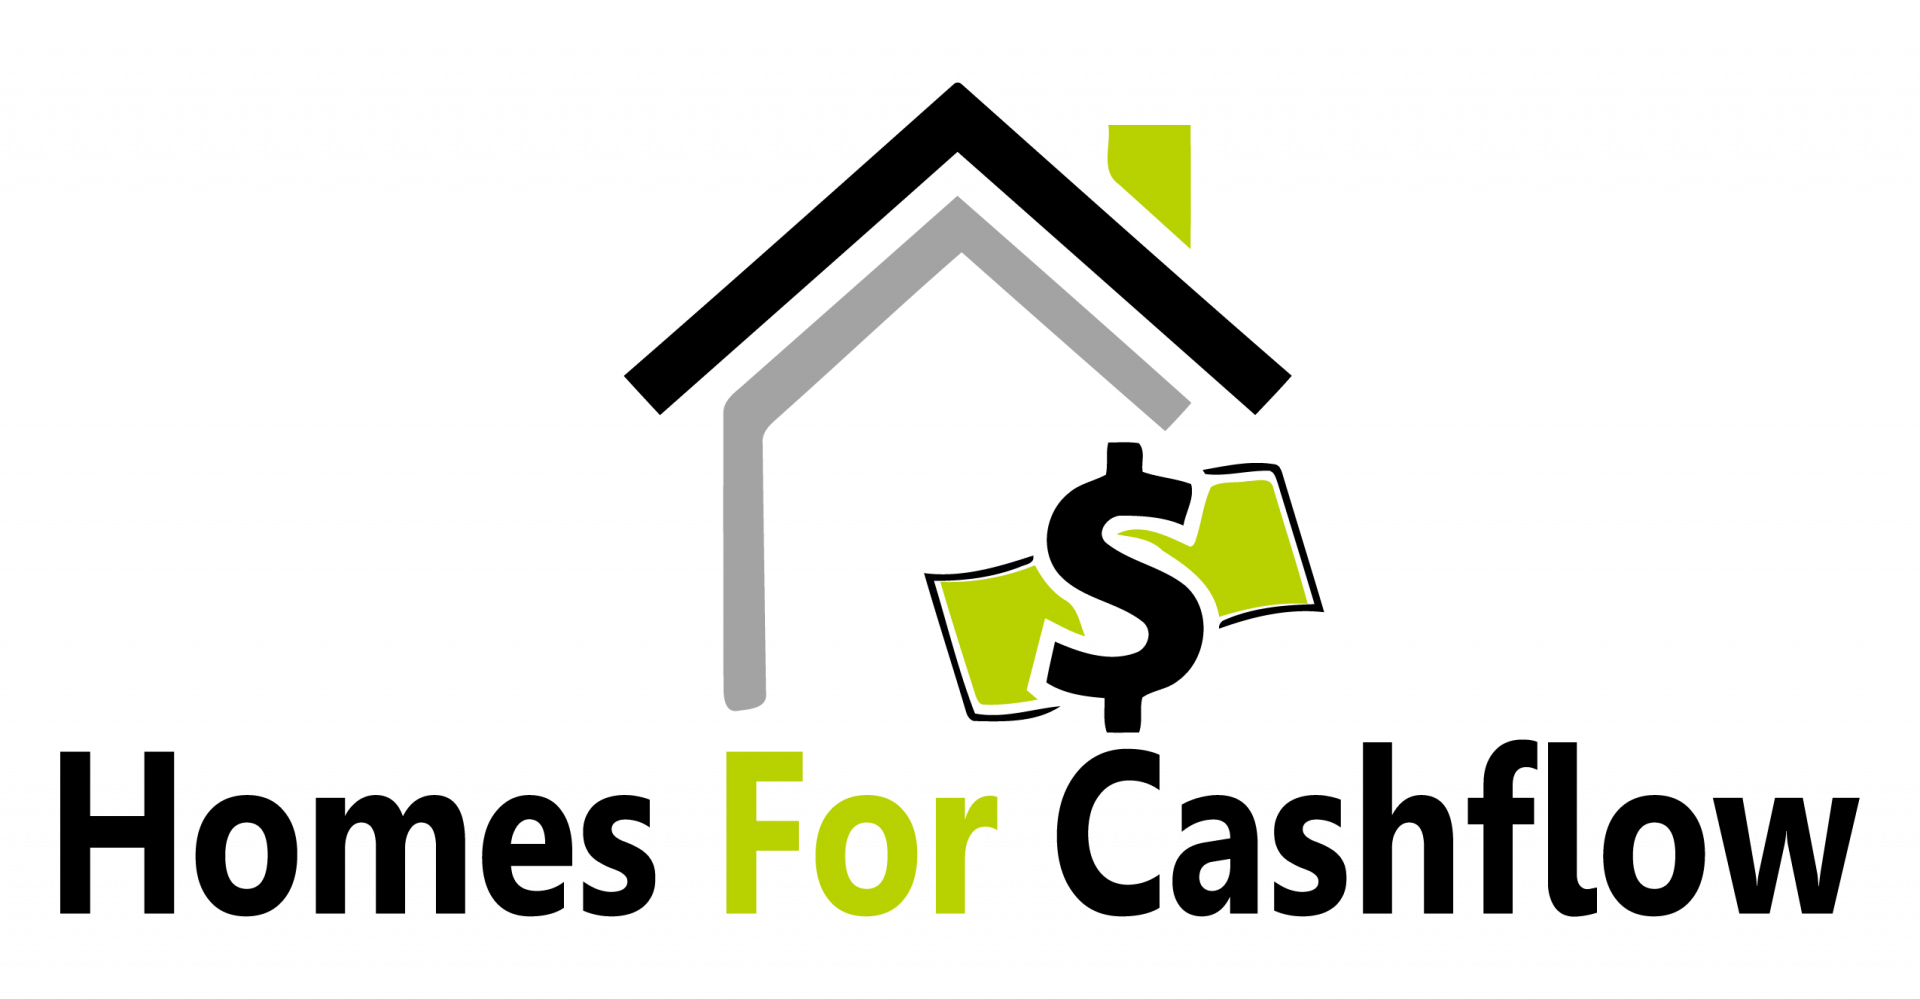 Homes For Cashflow logo